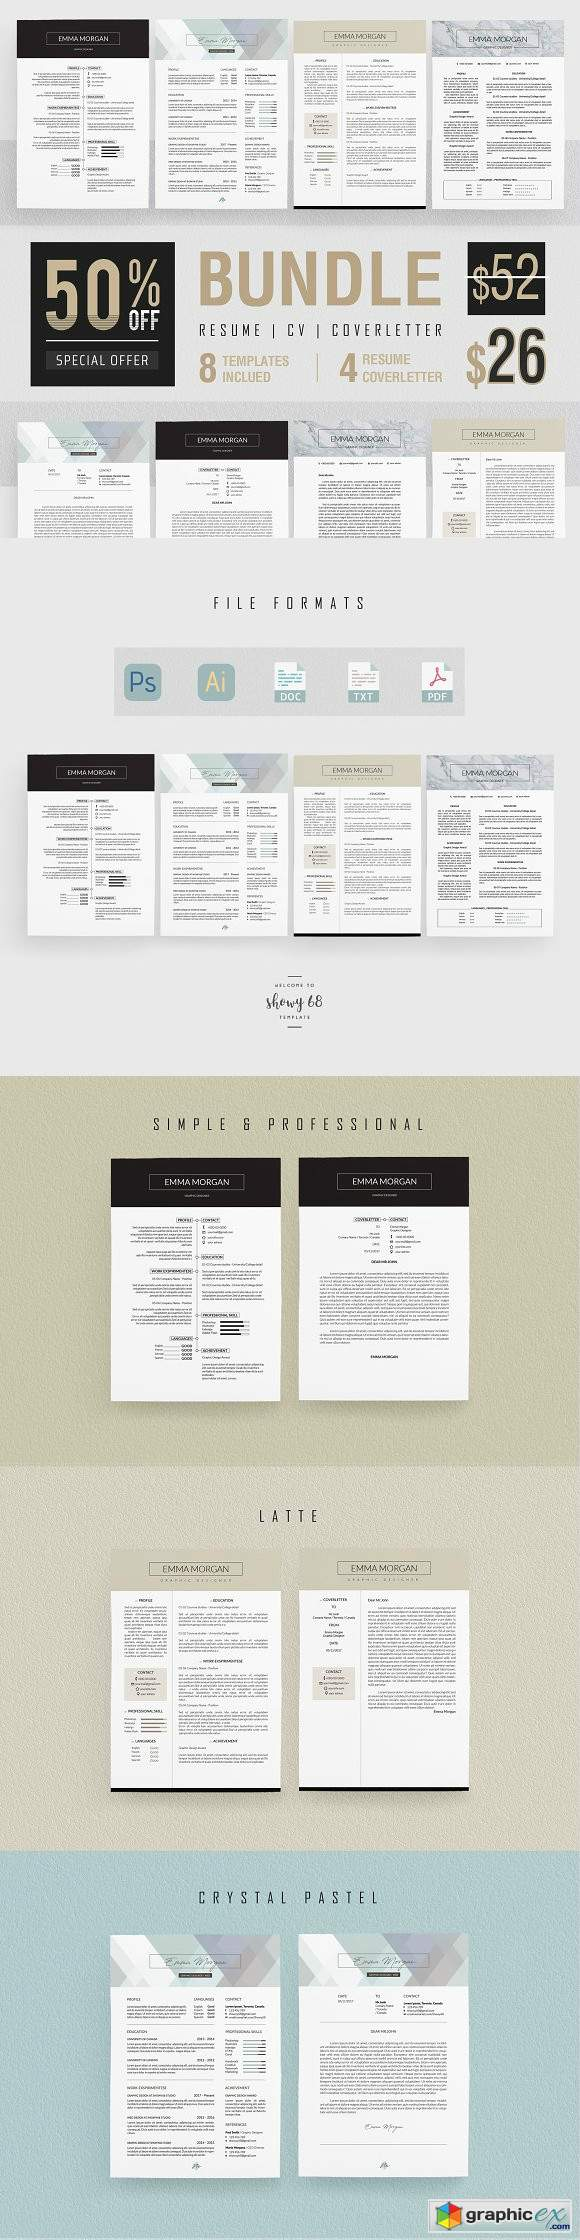 Professiona Resume BUNDLE Template M